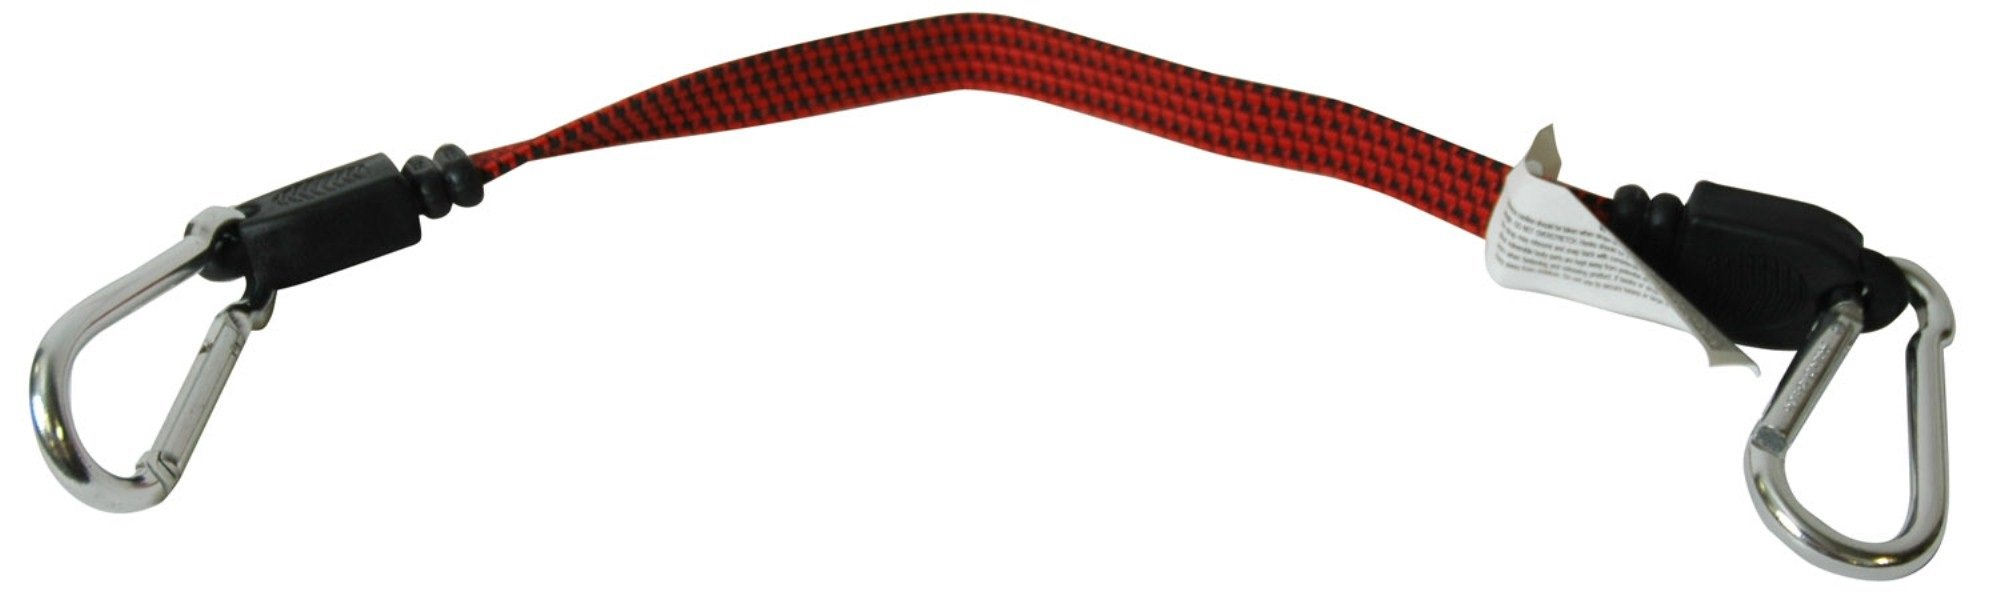 Highland (9431300 Red 20'' Carabiner Fat Strap Bungee Cord